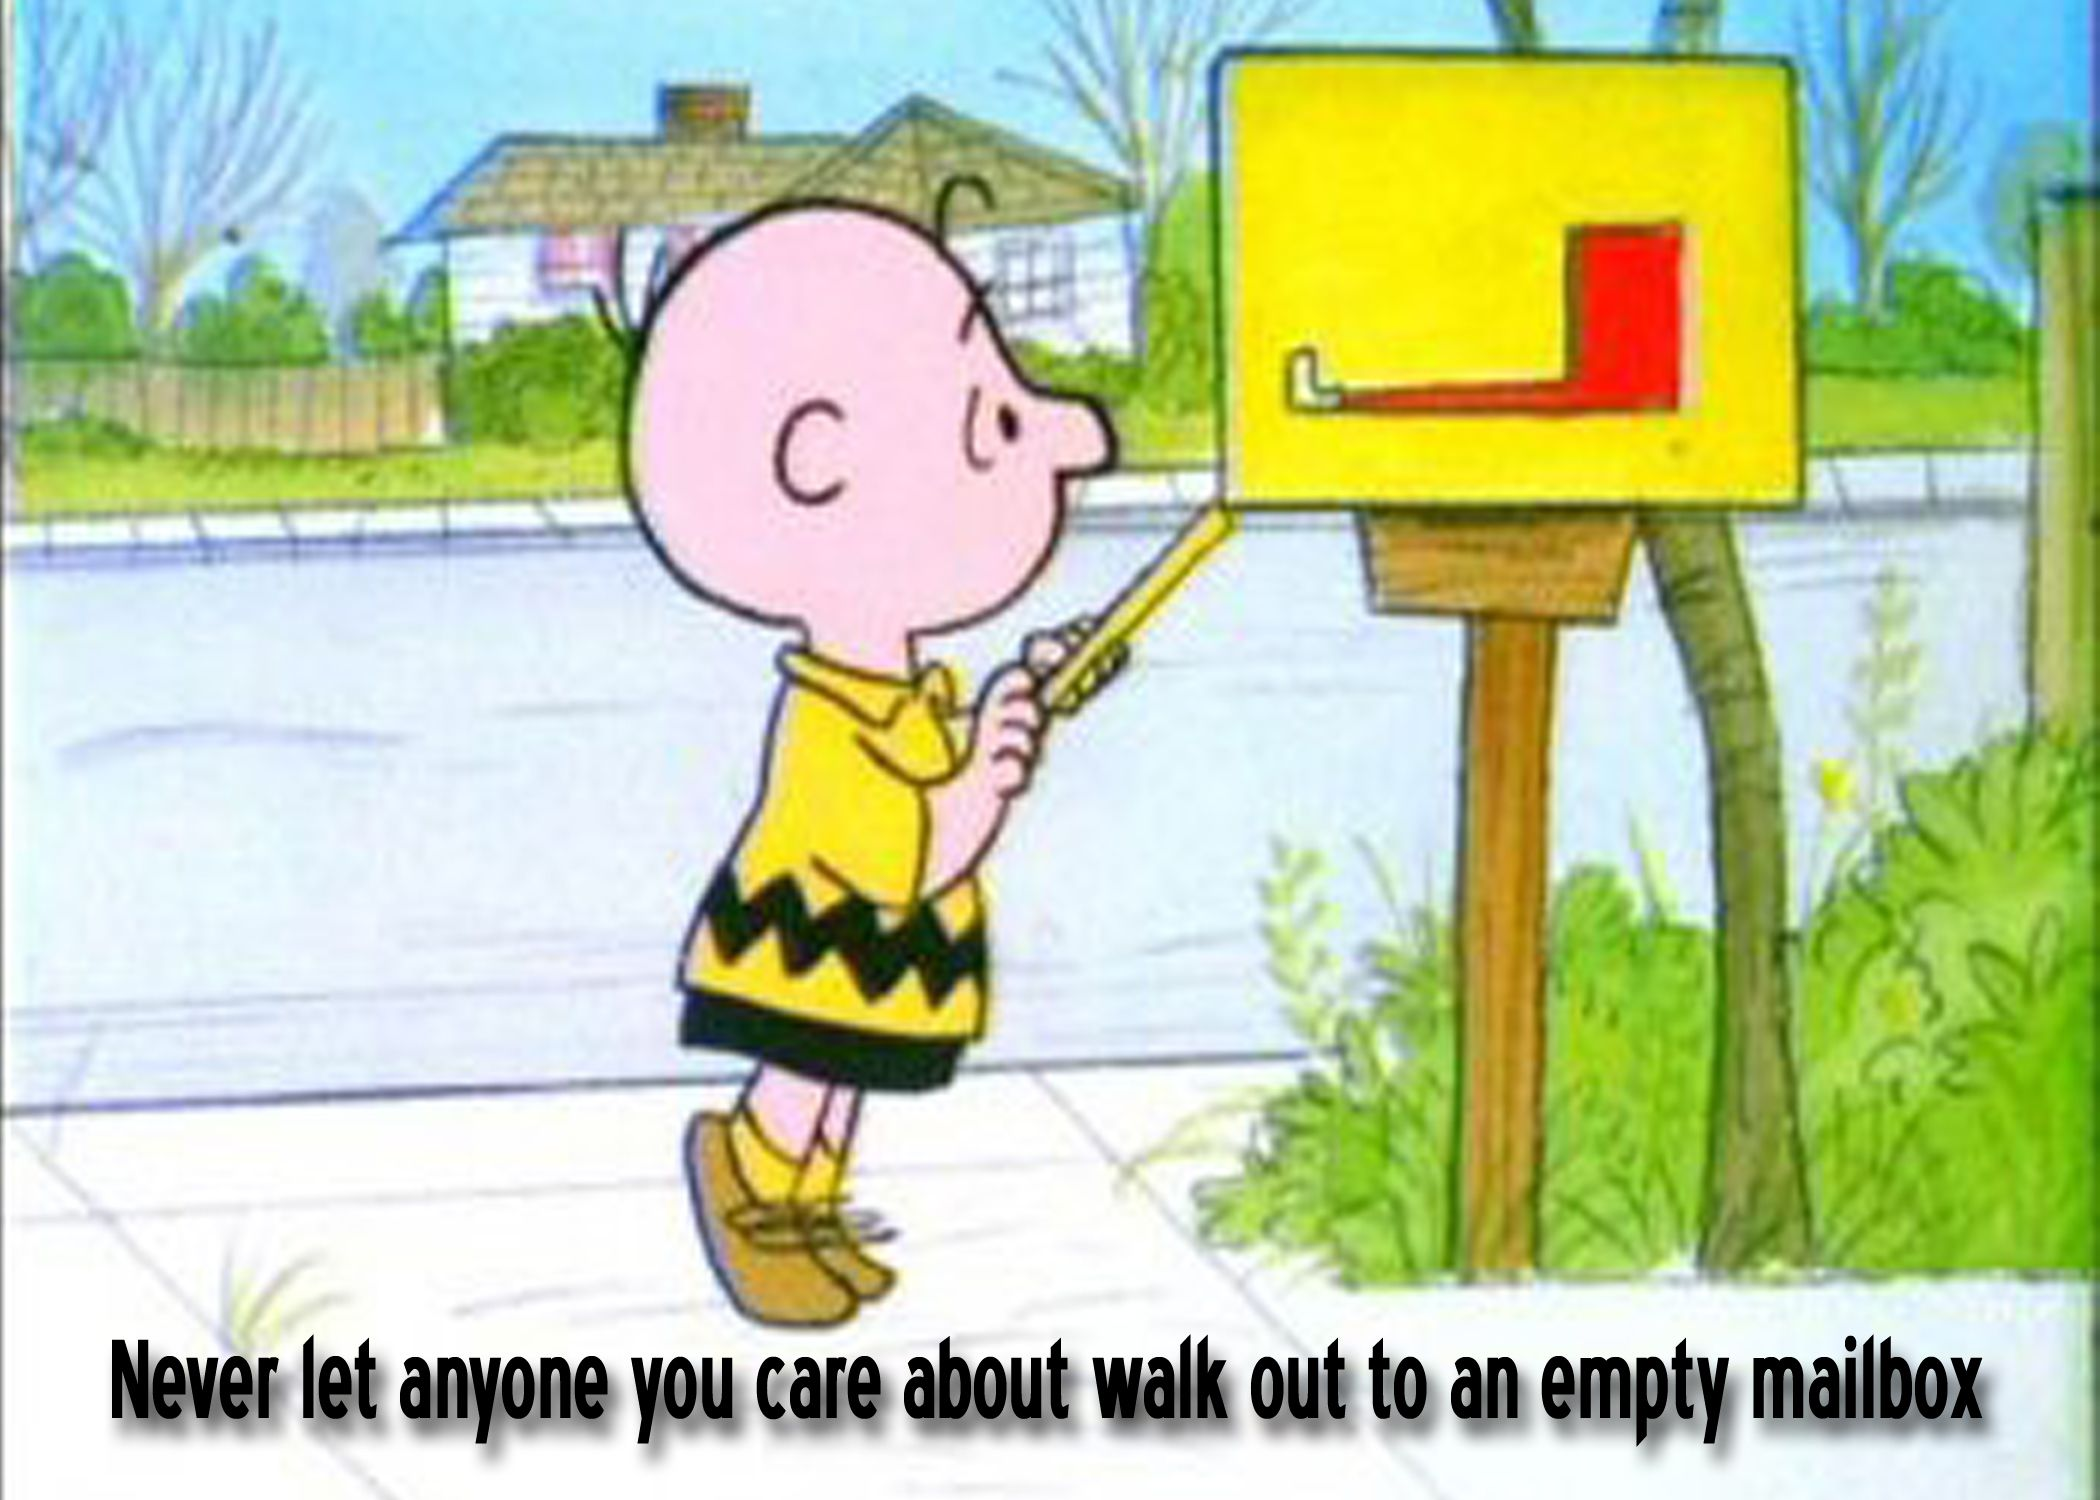 empty mailbox charlie brown. Never Let Anyone You Care About Walk Out To An Empty Mailbox. The World NEEDS More Kindness And In My World, Being Nice Pays. Mailbox Charlie Brown V